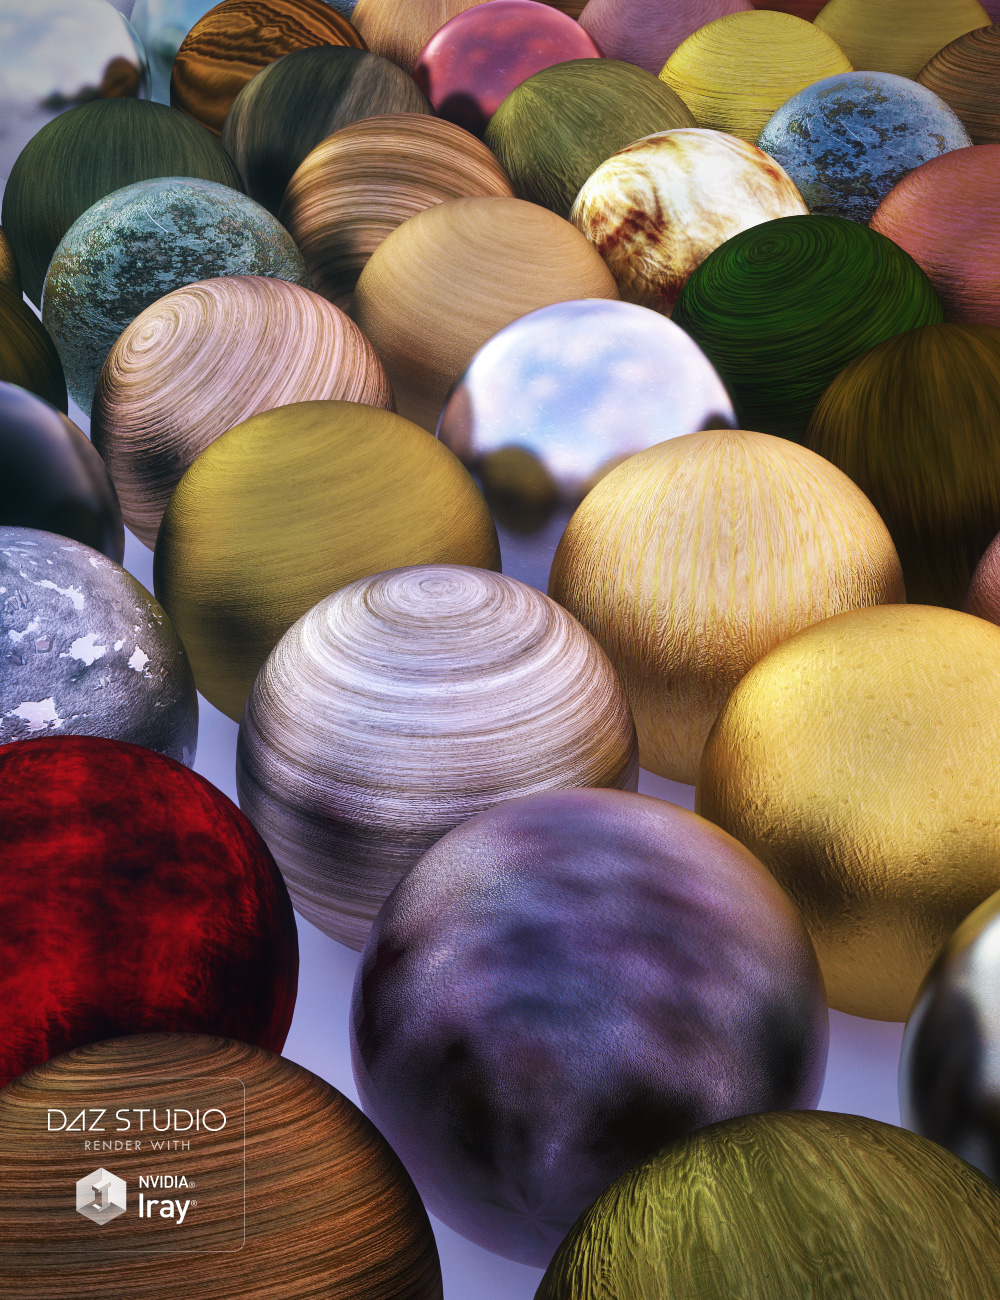 Satiny Wood Iray Shaders by: JGreenlees, 3D Models by Daz 3D